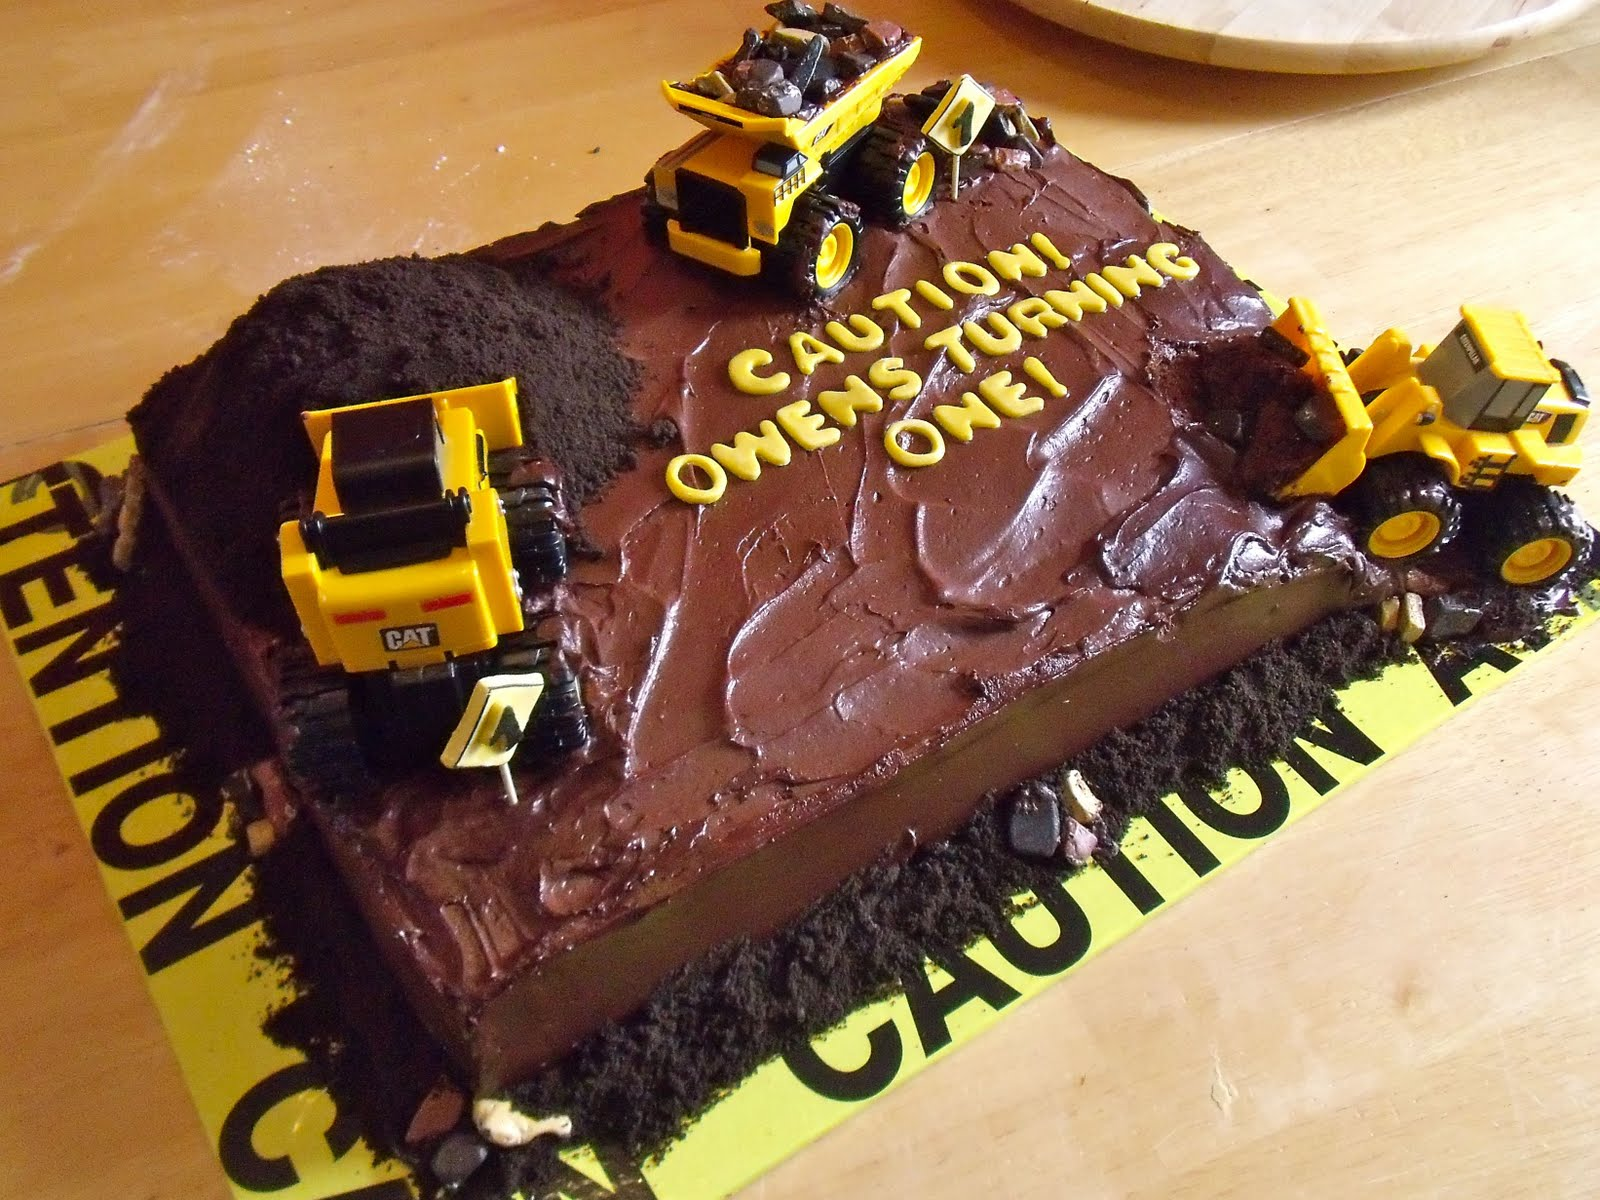 Pleasing 10 Construction Site Cakes For Kids Photo Construction Site Funny Birthday Cards Online Alyptdamsfinfo